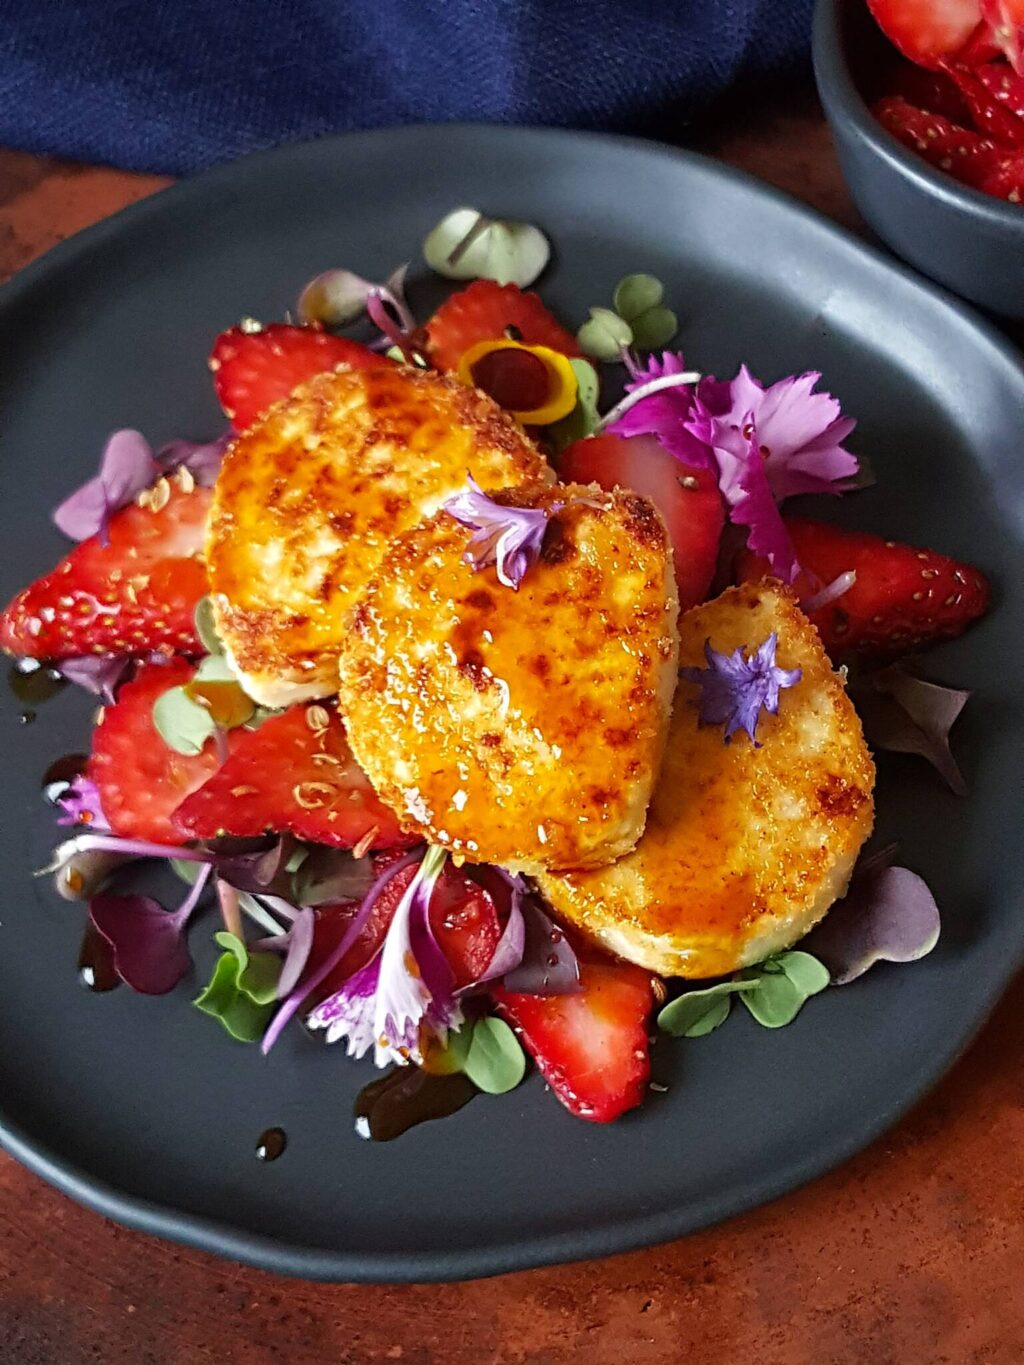 Goat's Cheese with Strawberries